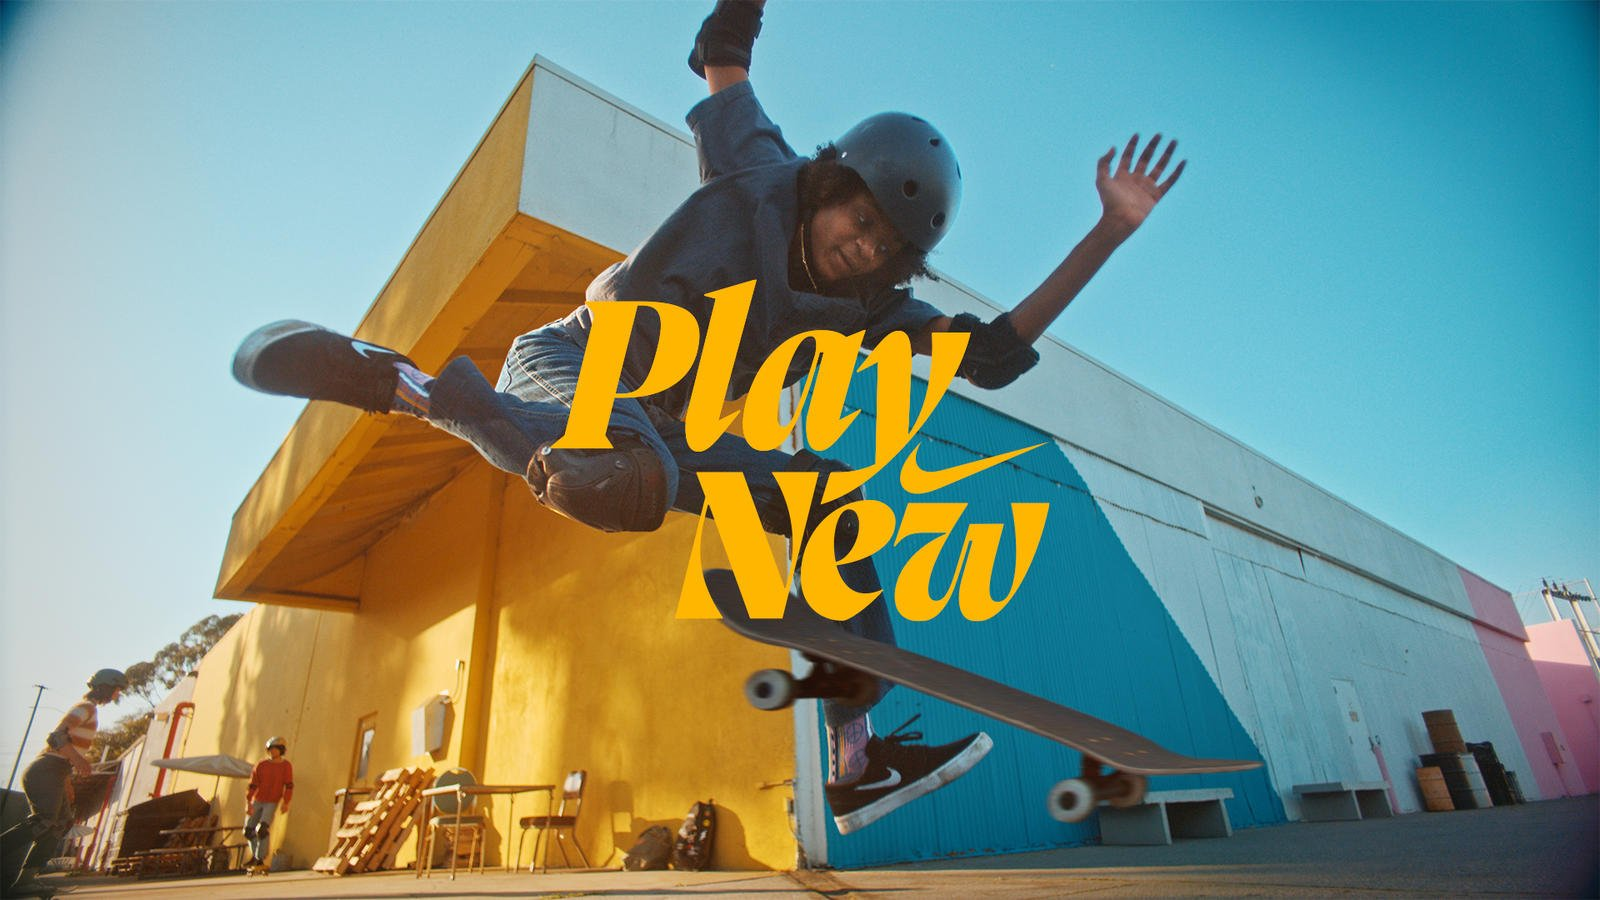 Nike Play New sports campaign video